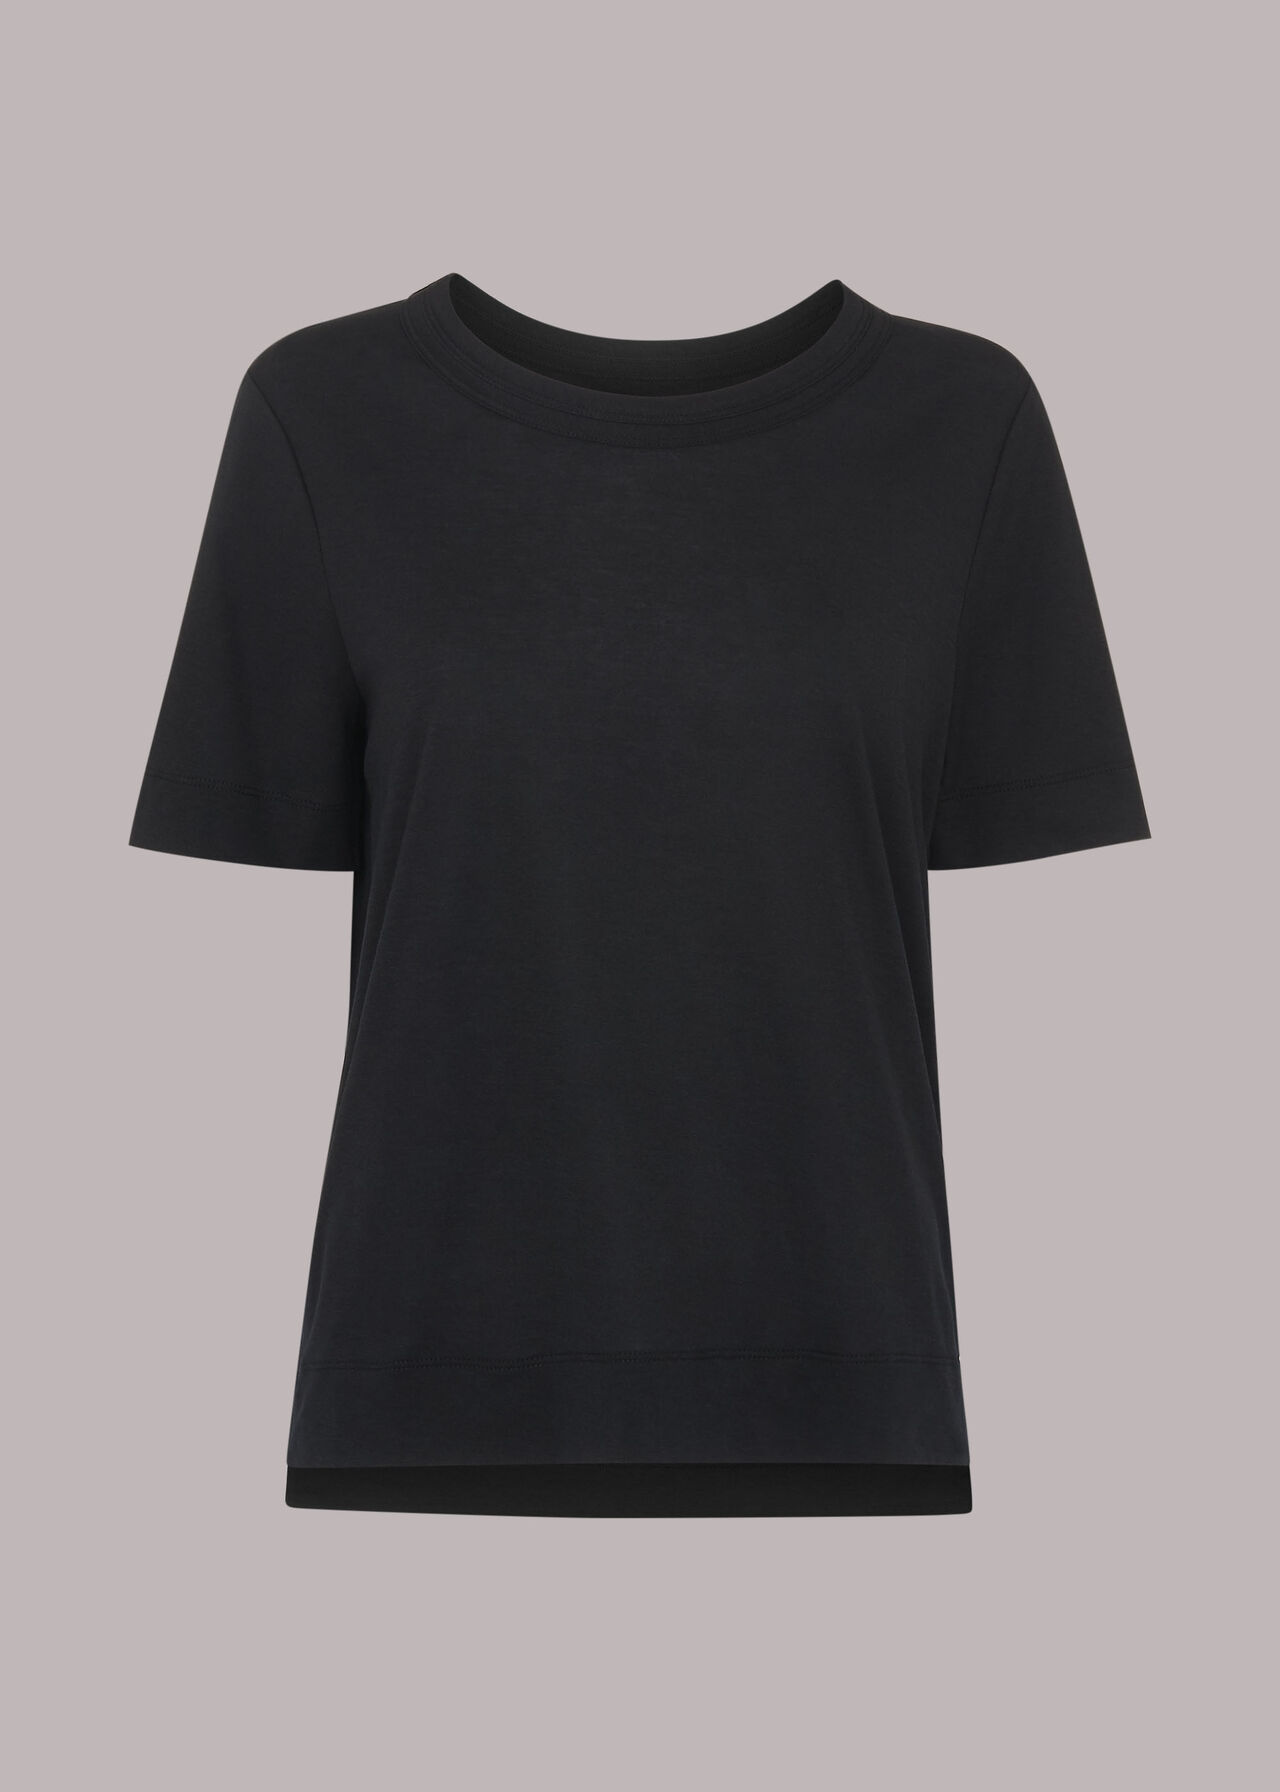 Rosa Double Trim Tee Shirt